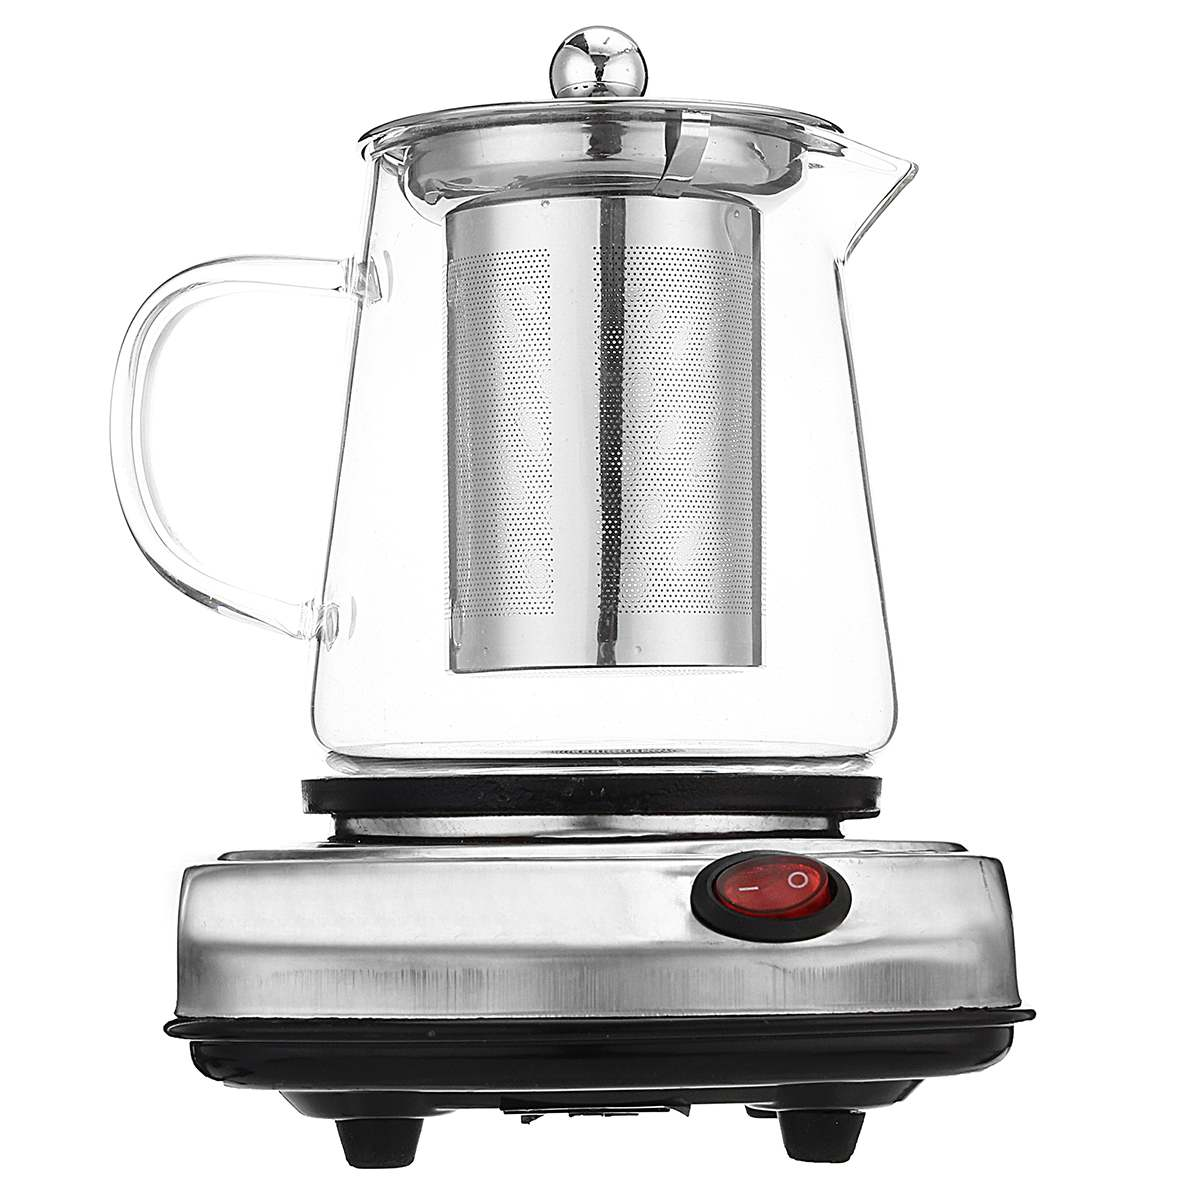 500ml Electric Kettles Glass Pot Tea Stove Flower Tea Heater Kettle Glass coffee Tea pot Electric Kettle Water with Filter500ml Electric Kettles Glass Pot Tea Stove Flower Tea Heater Kettle Glass coffee Tea pot Electric Kettle Water with Filter